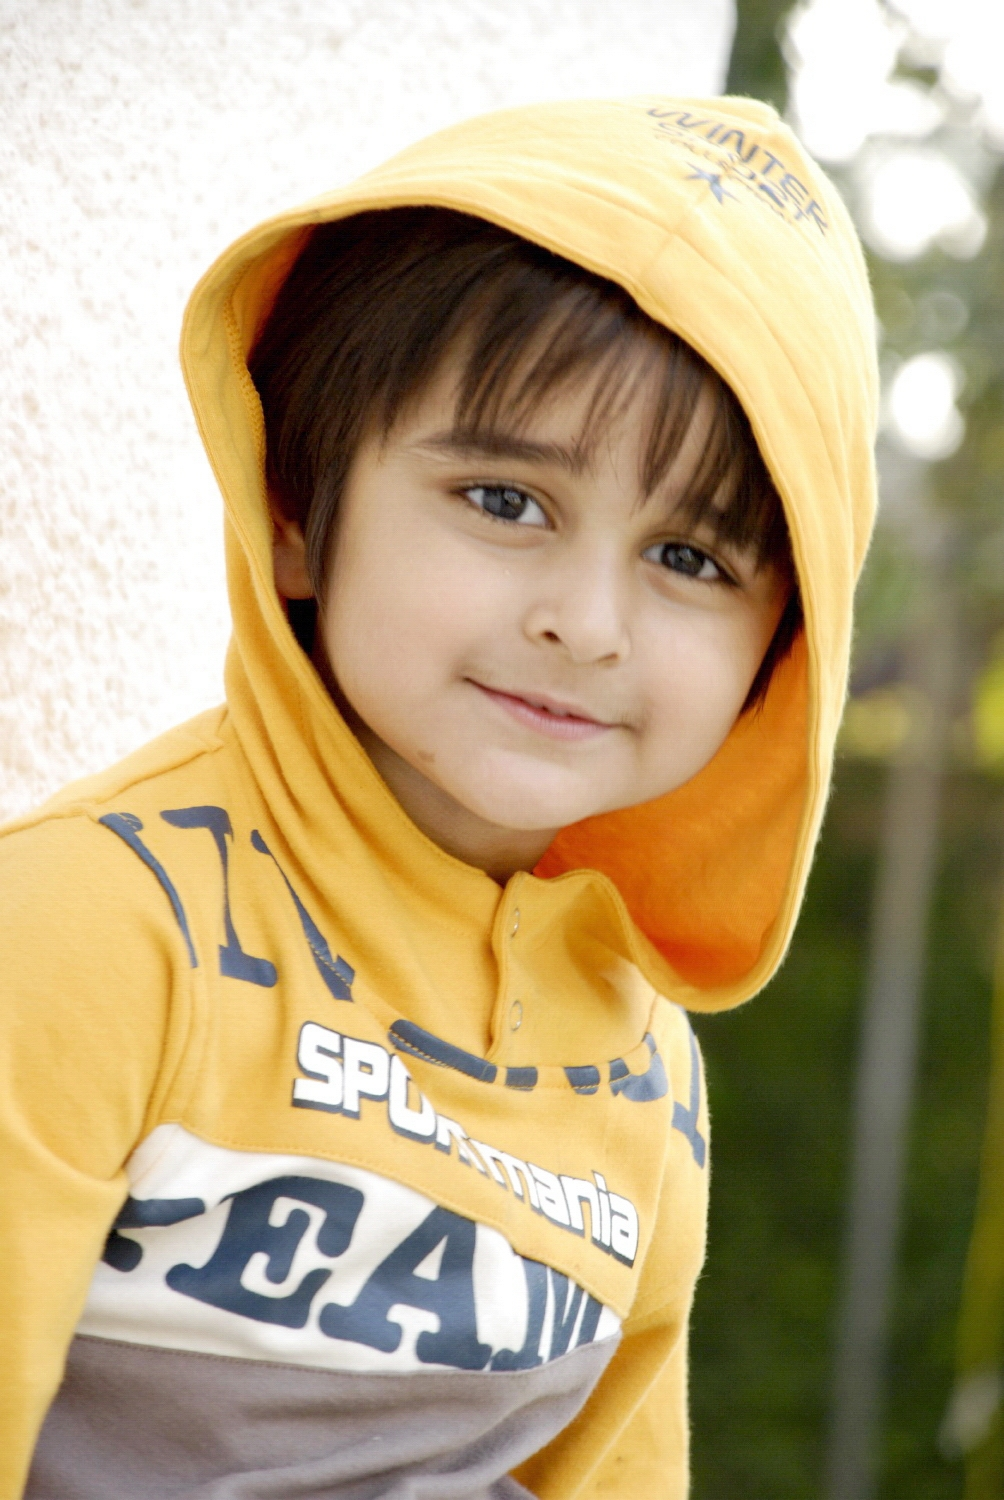 Cute Kid, Adolescence, Person, Kid, Little, HQ Photo